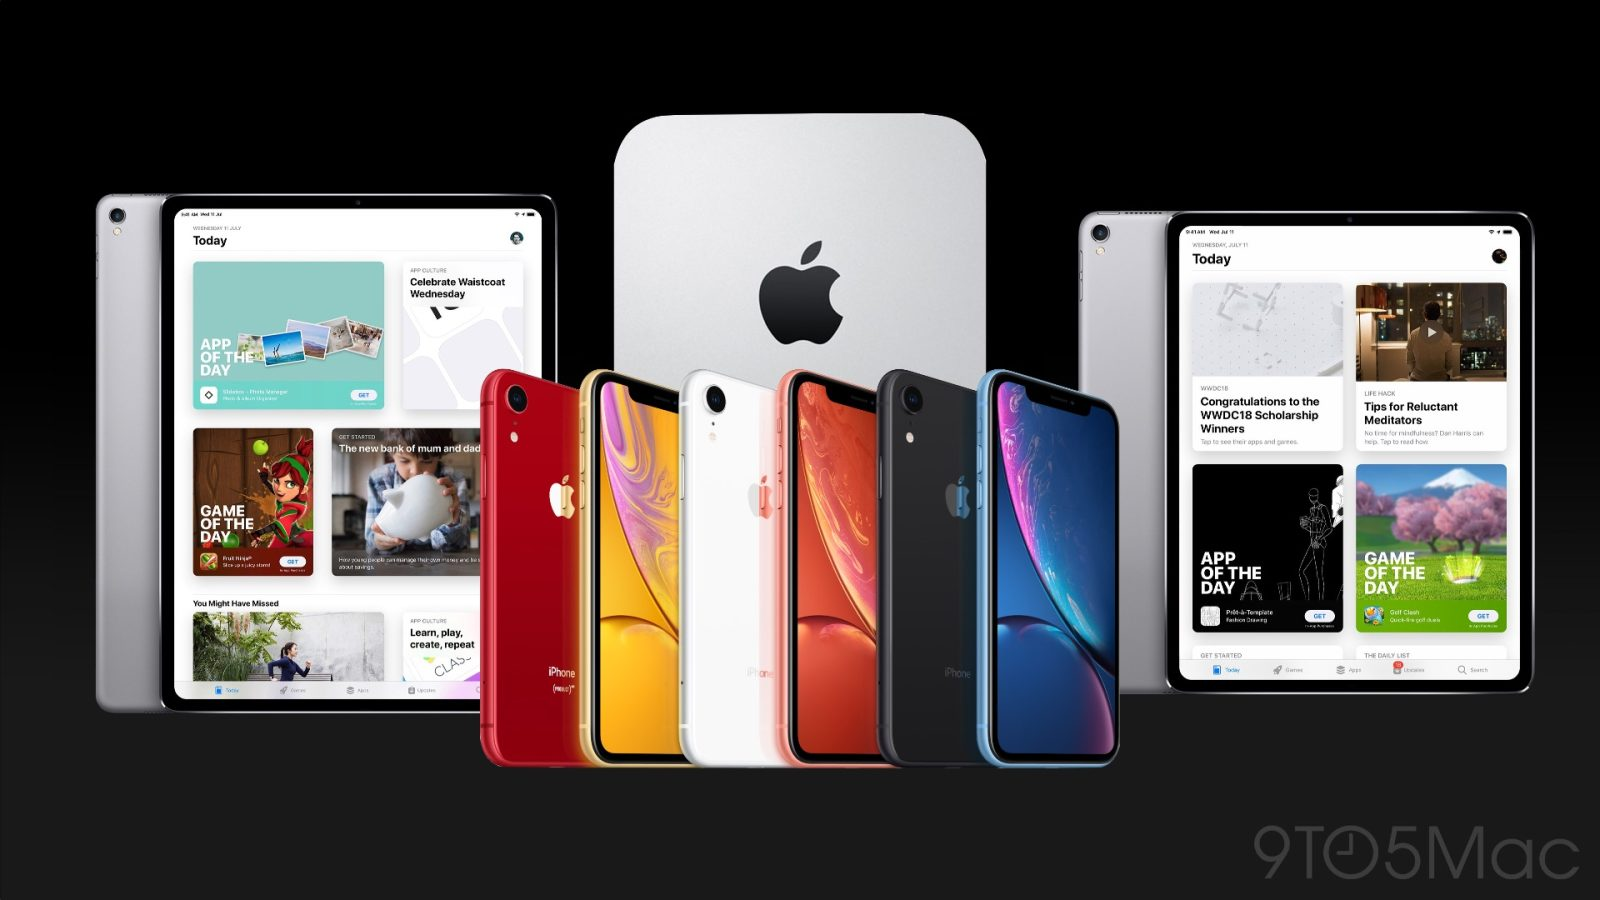 Kuo predicts new iPad mini 5, AirPower launch in late 2018